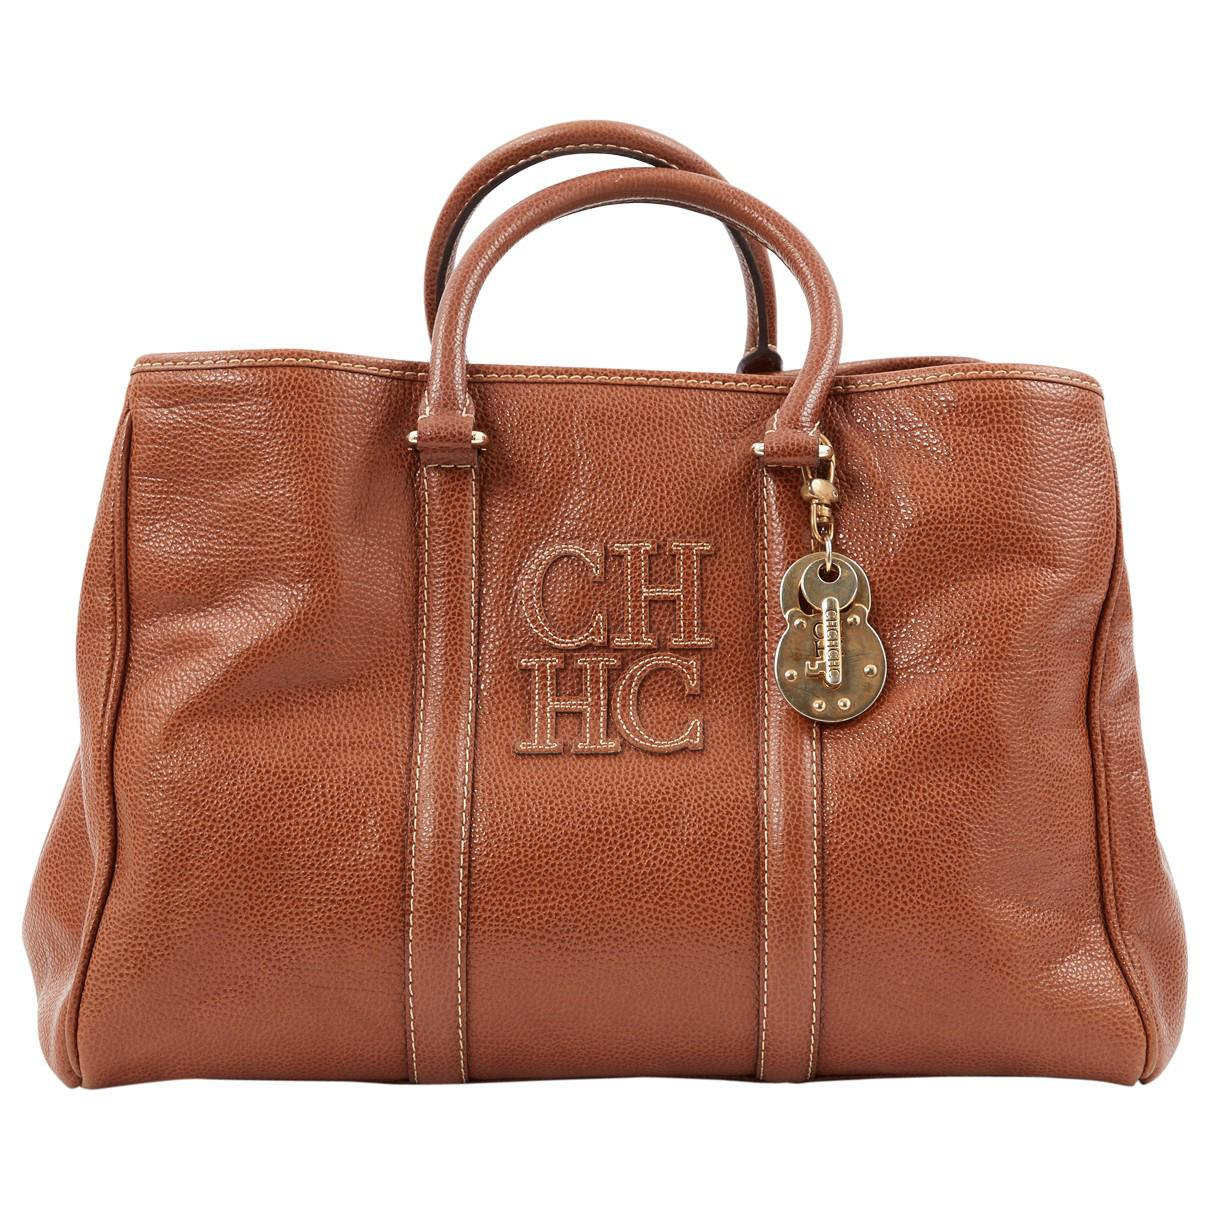 Carolina Herrera Pre-owned - Leather handbag bzML5Xjs